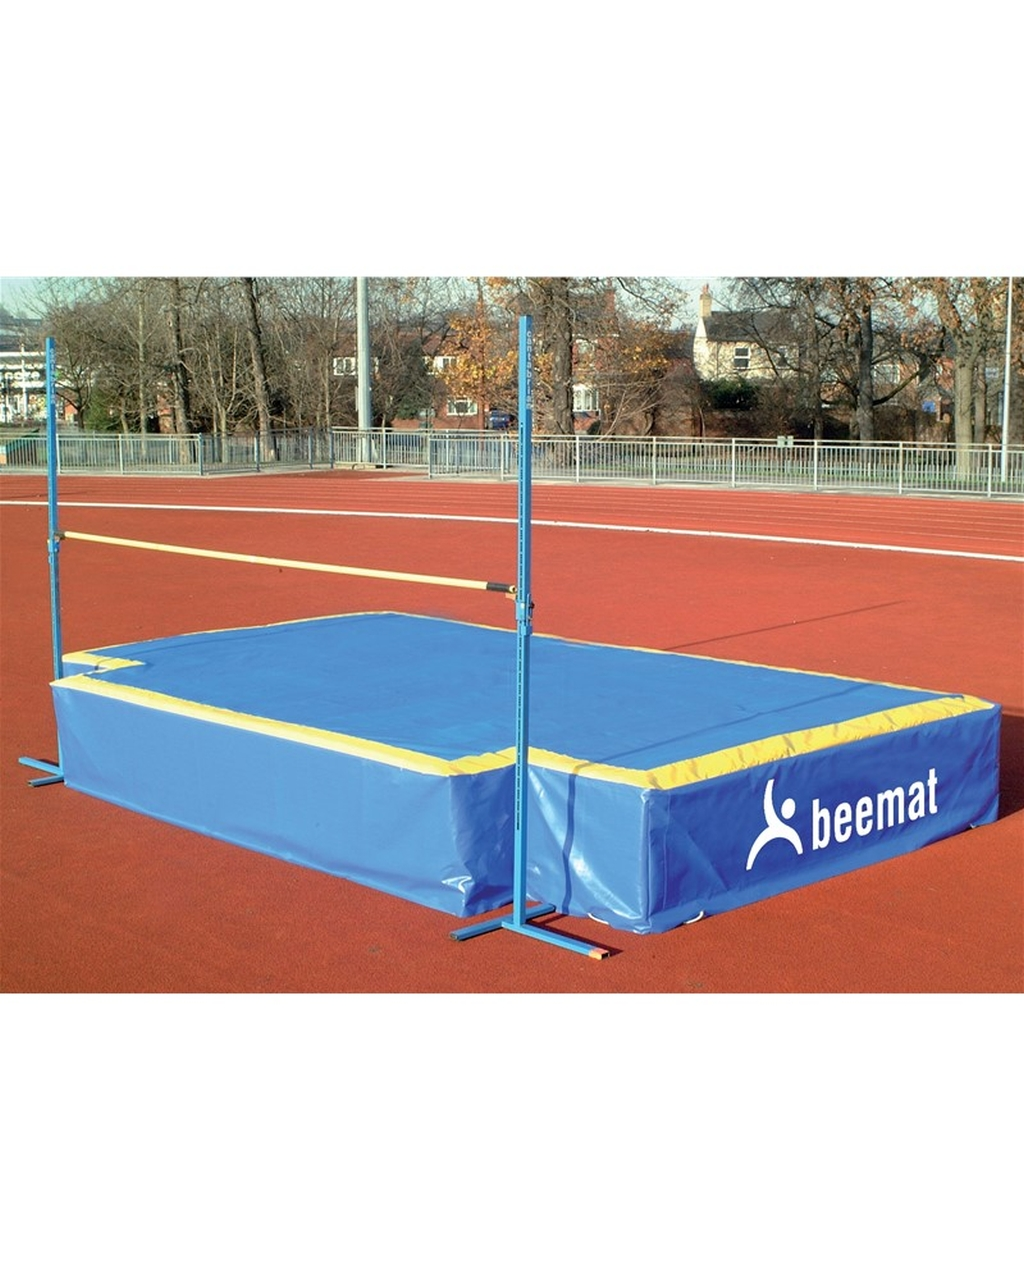 High Jump Landing Areas - With PVC Coverall